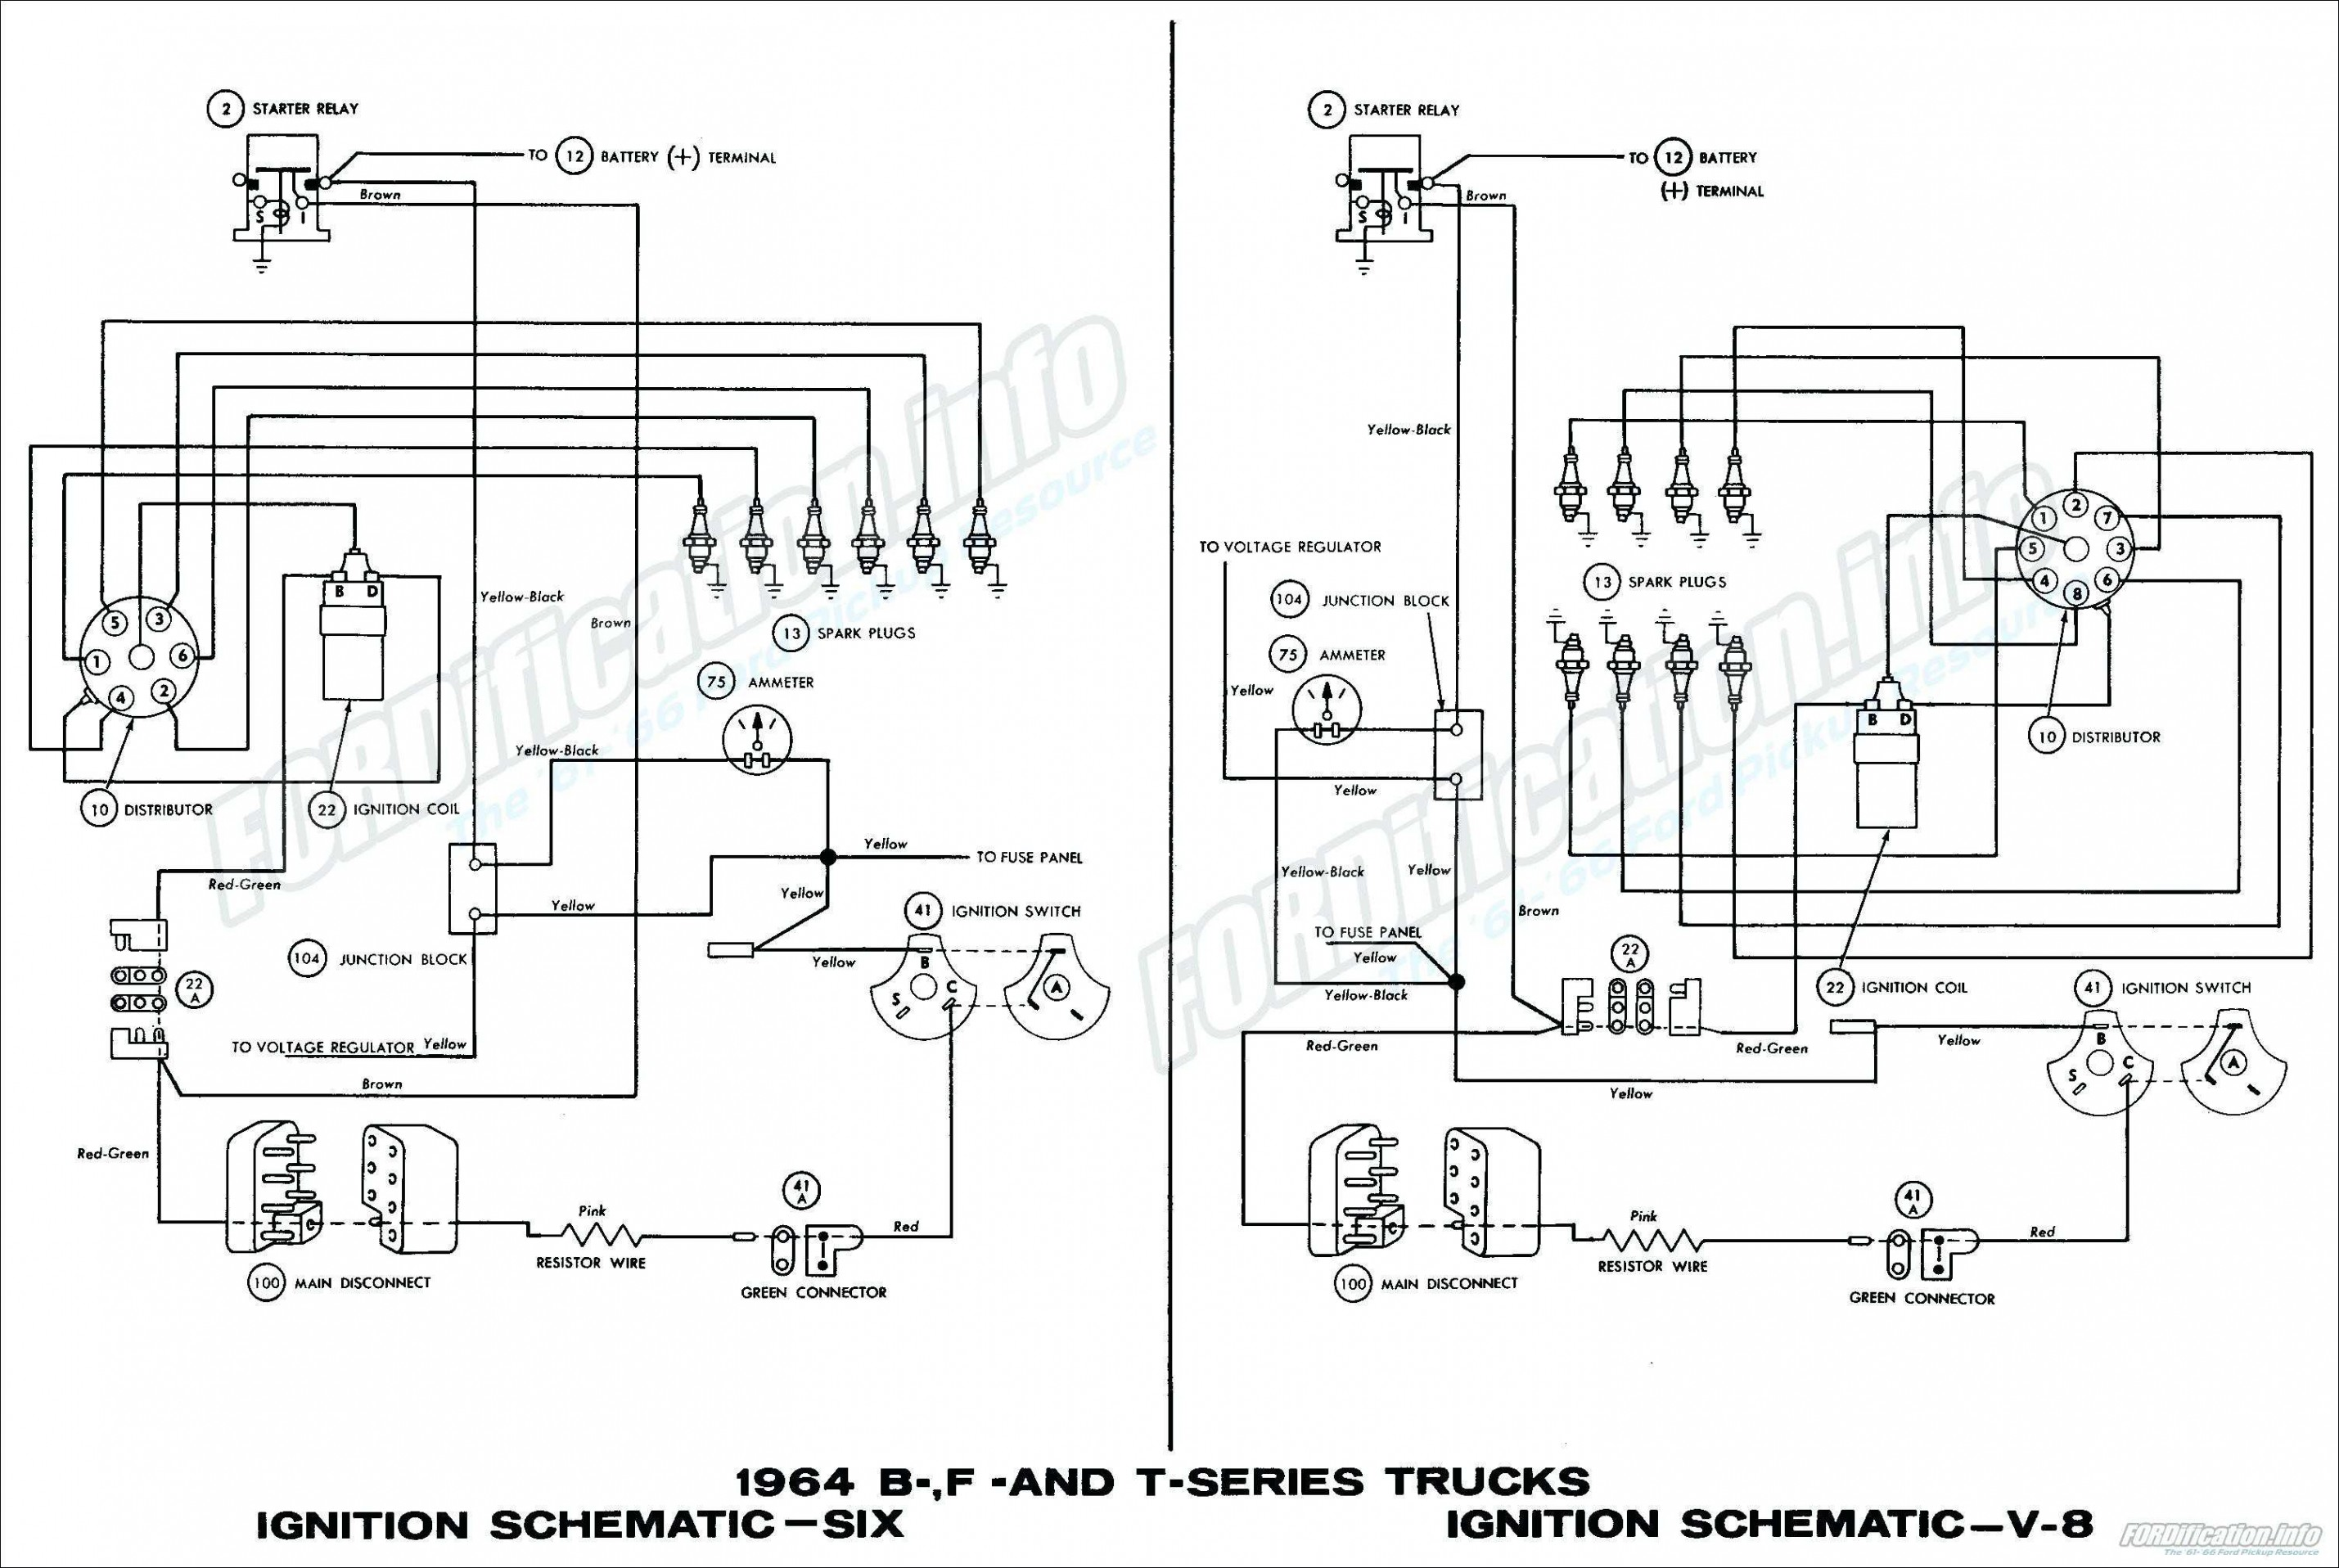 Schema Chevy 454 Spark Plug Wire Diagram Full Quality Stagingdiagrams Freiheitfuermumia De